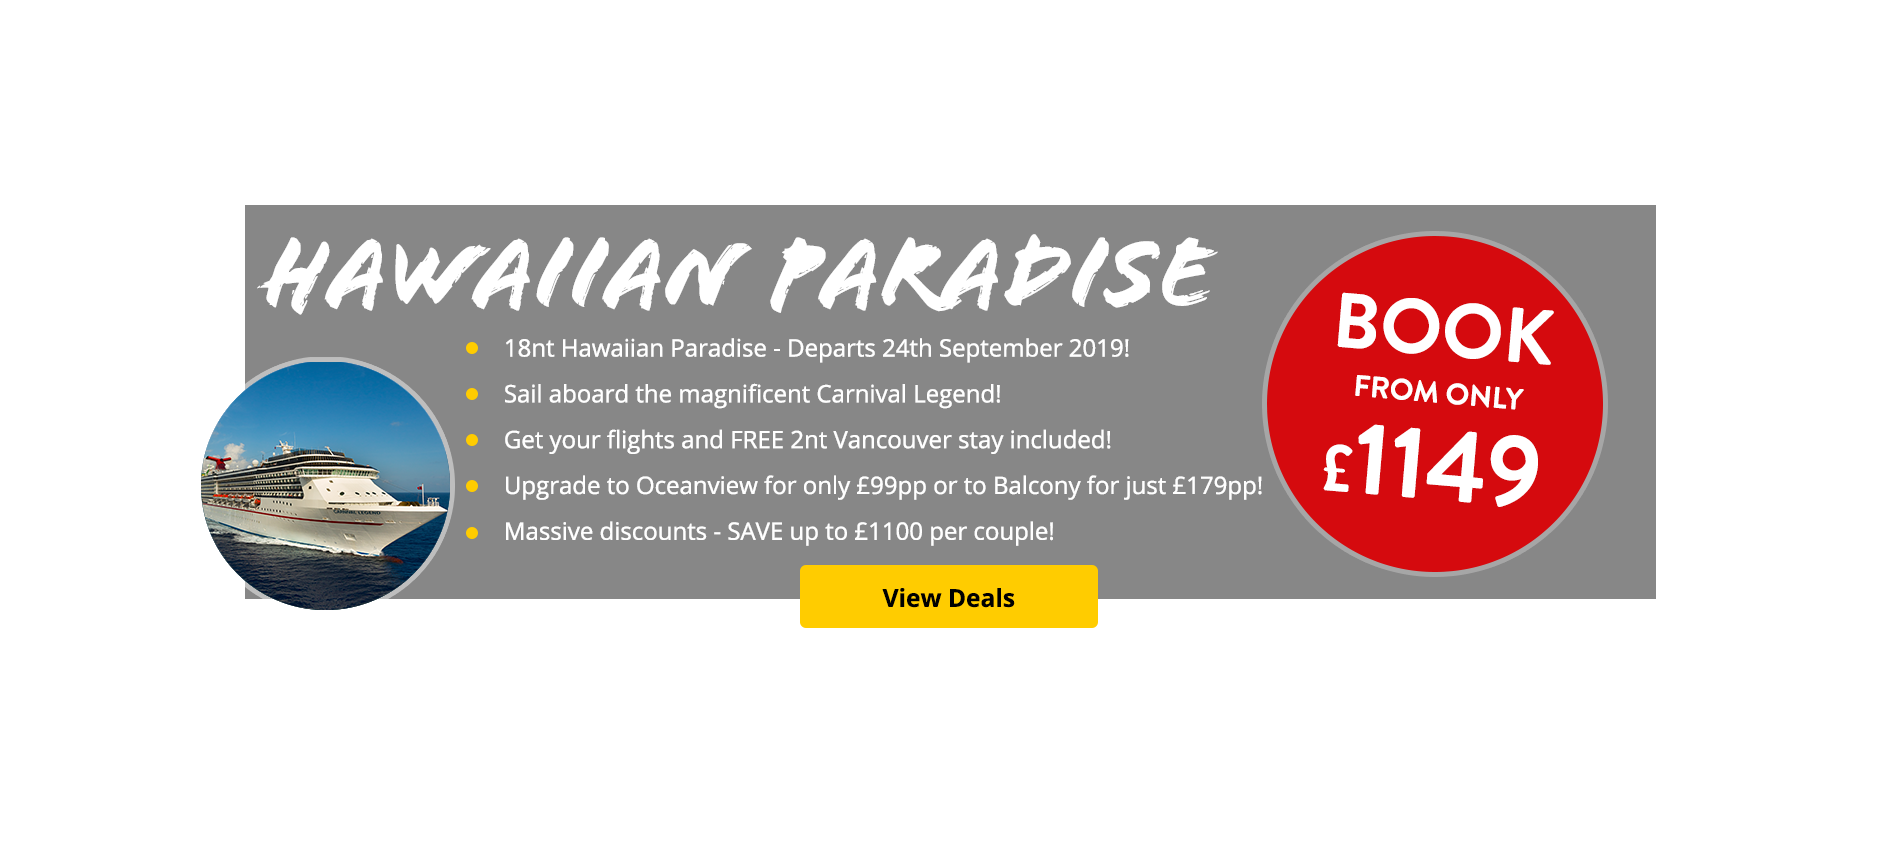 18nt Hawaiian Paradise - Departs 24th September 2019! Get your flights and FREE 2nt Vancouver stay included!